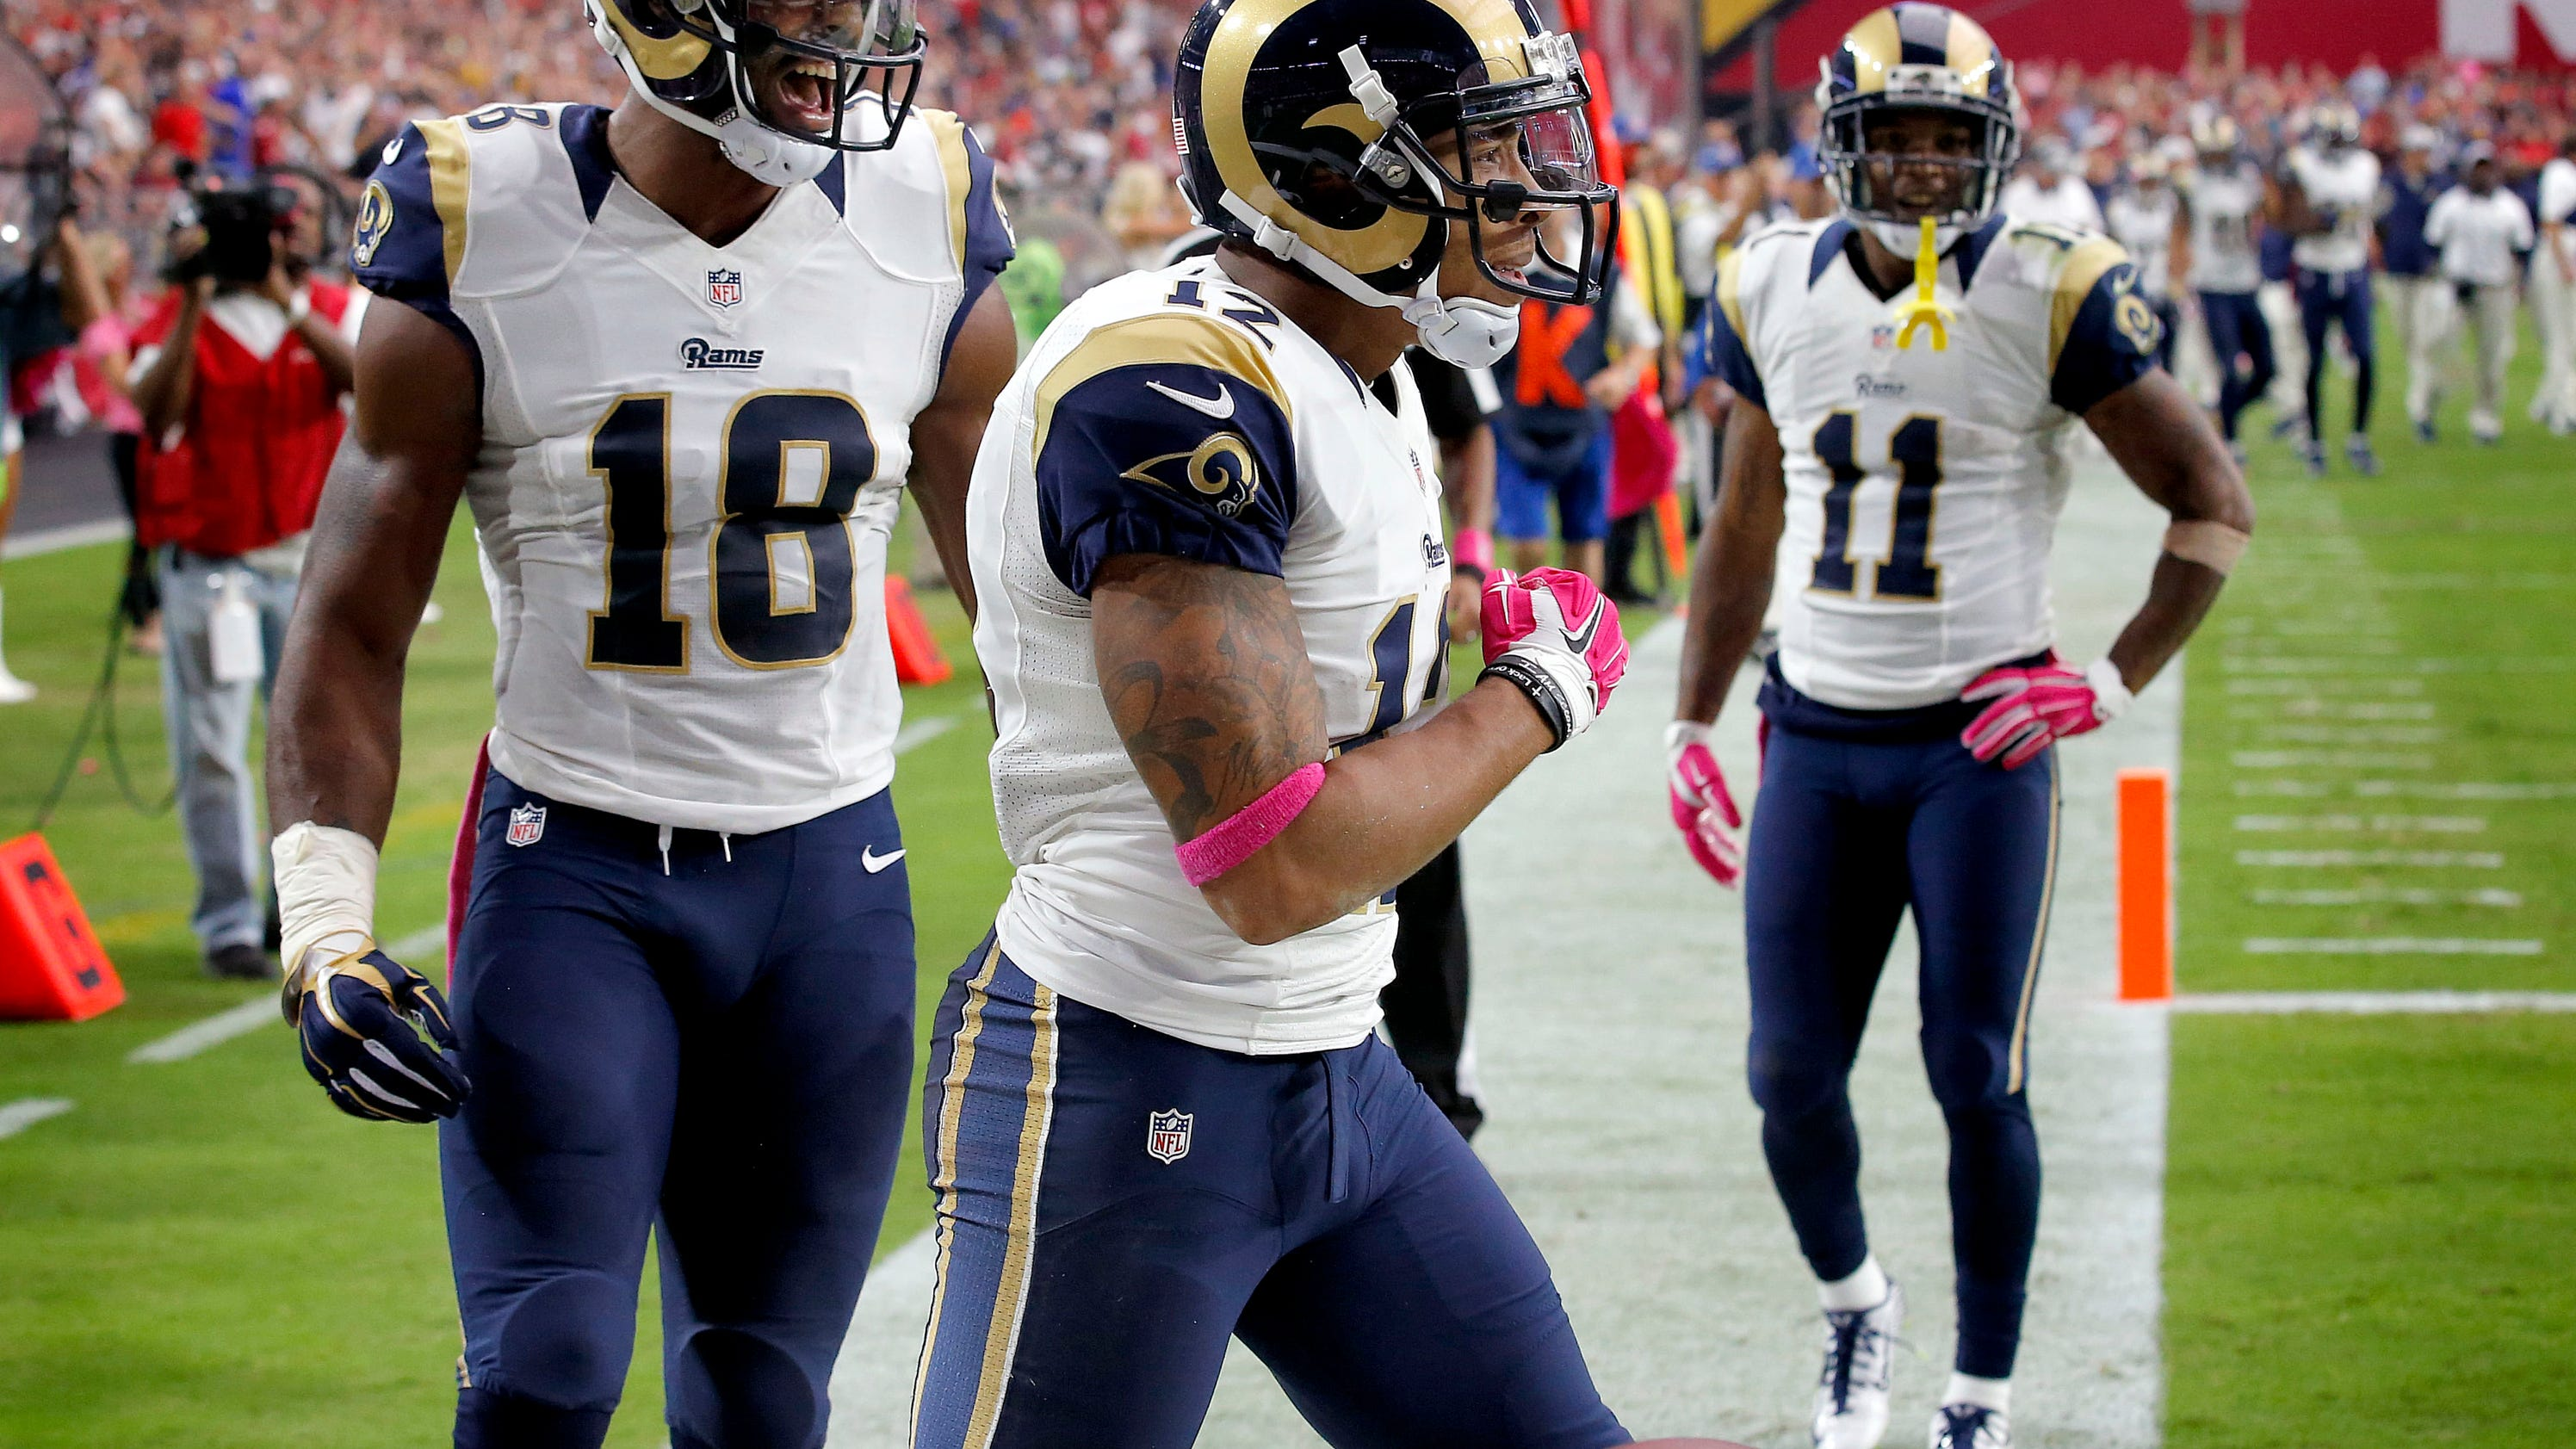 receivers austin and bailey turn up offense for rams